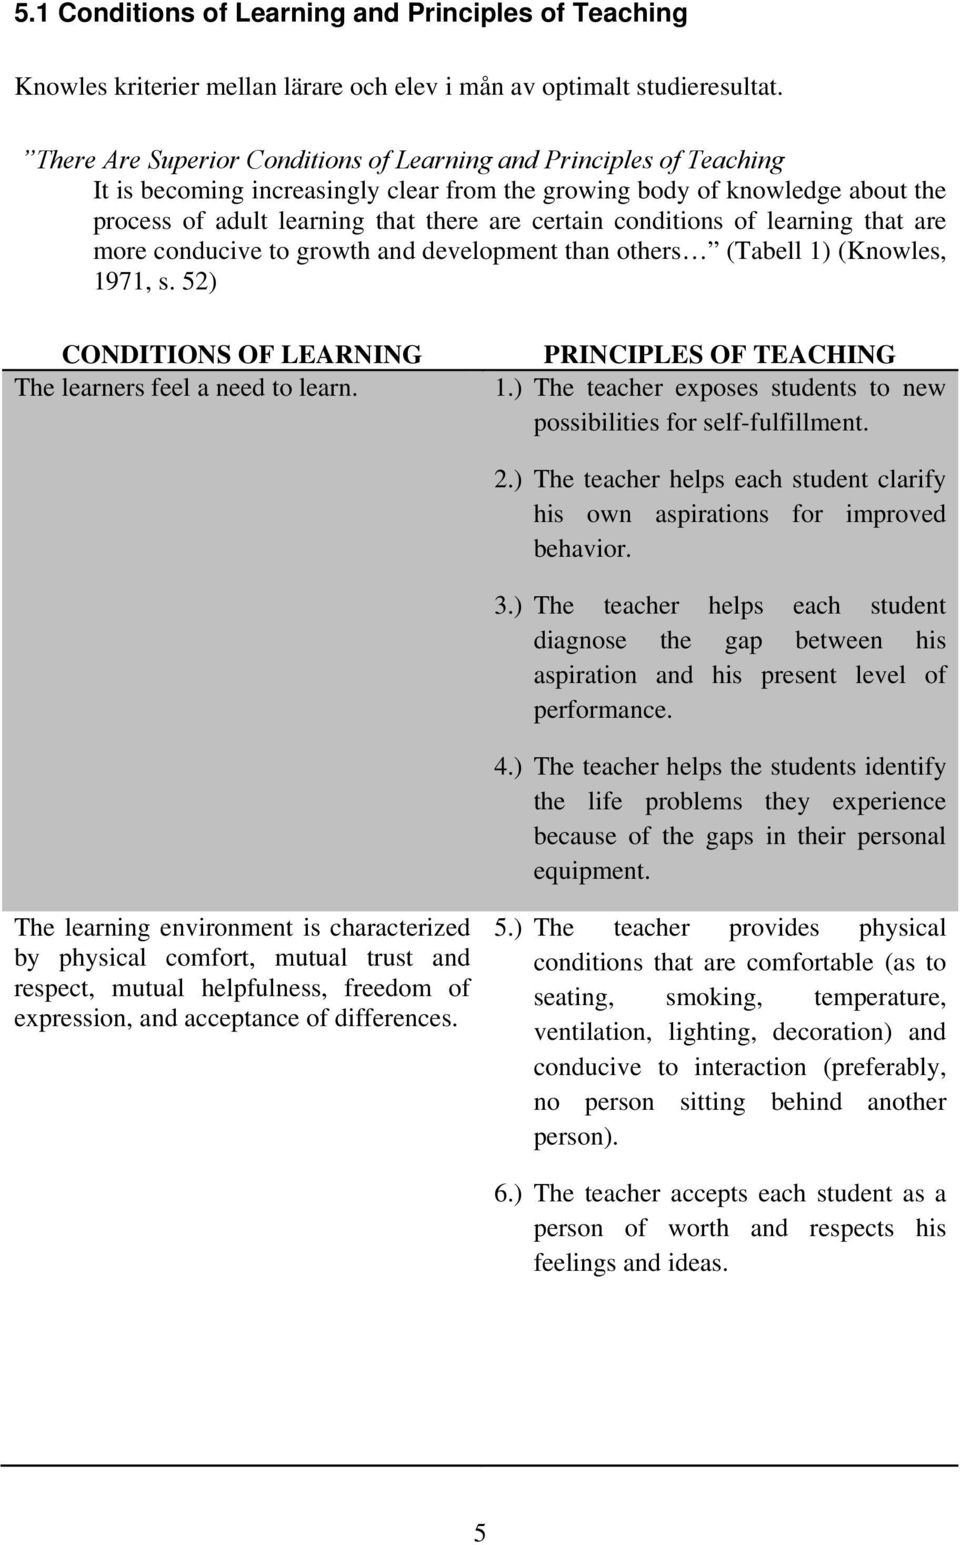 conditions of learning that are more conducive to growth and development than others (Tabell 1) (Knowles, 1971, s. 52) CONDITIONS OF LEARNING The learners feel a need to learn.